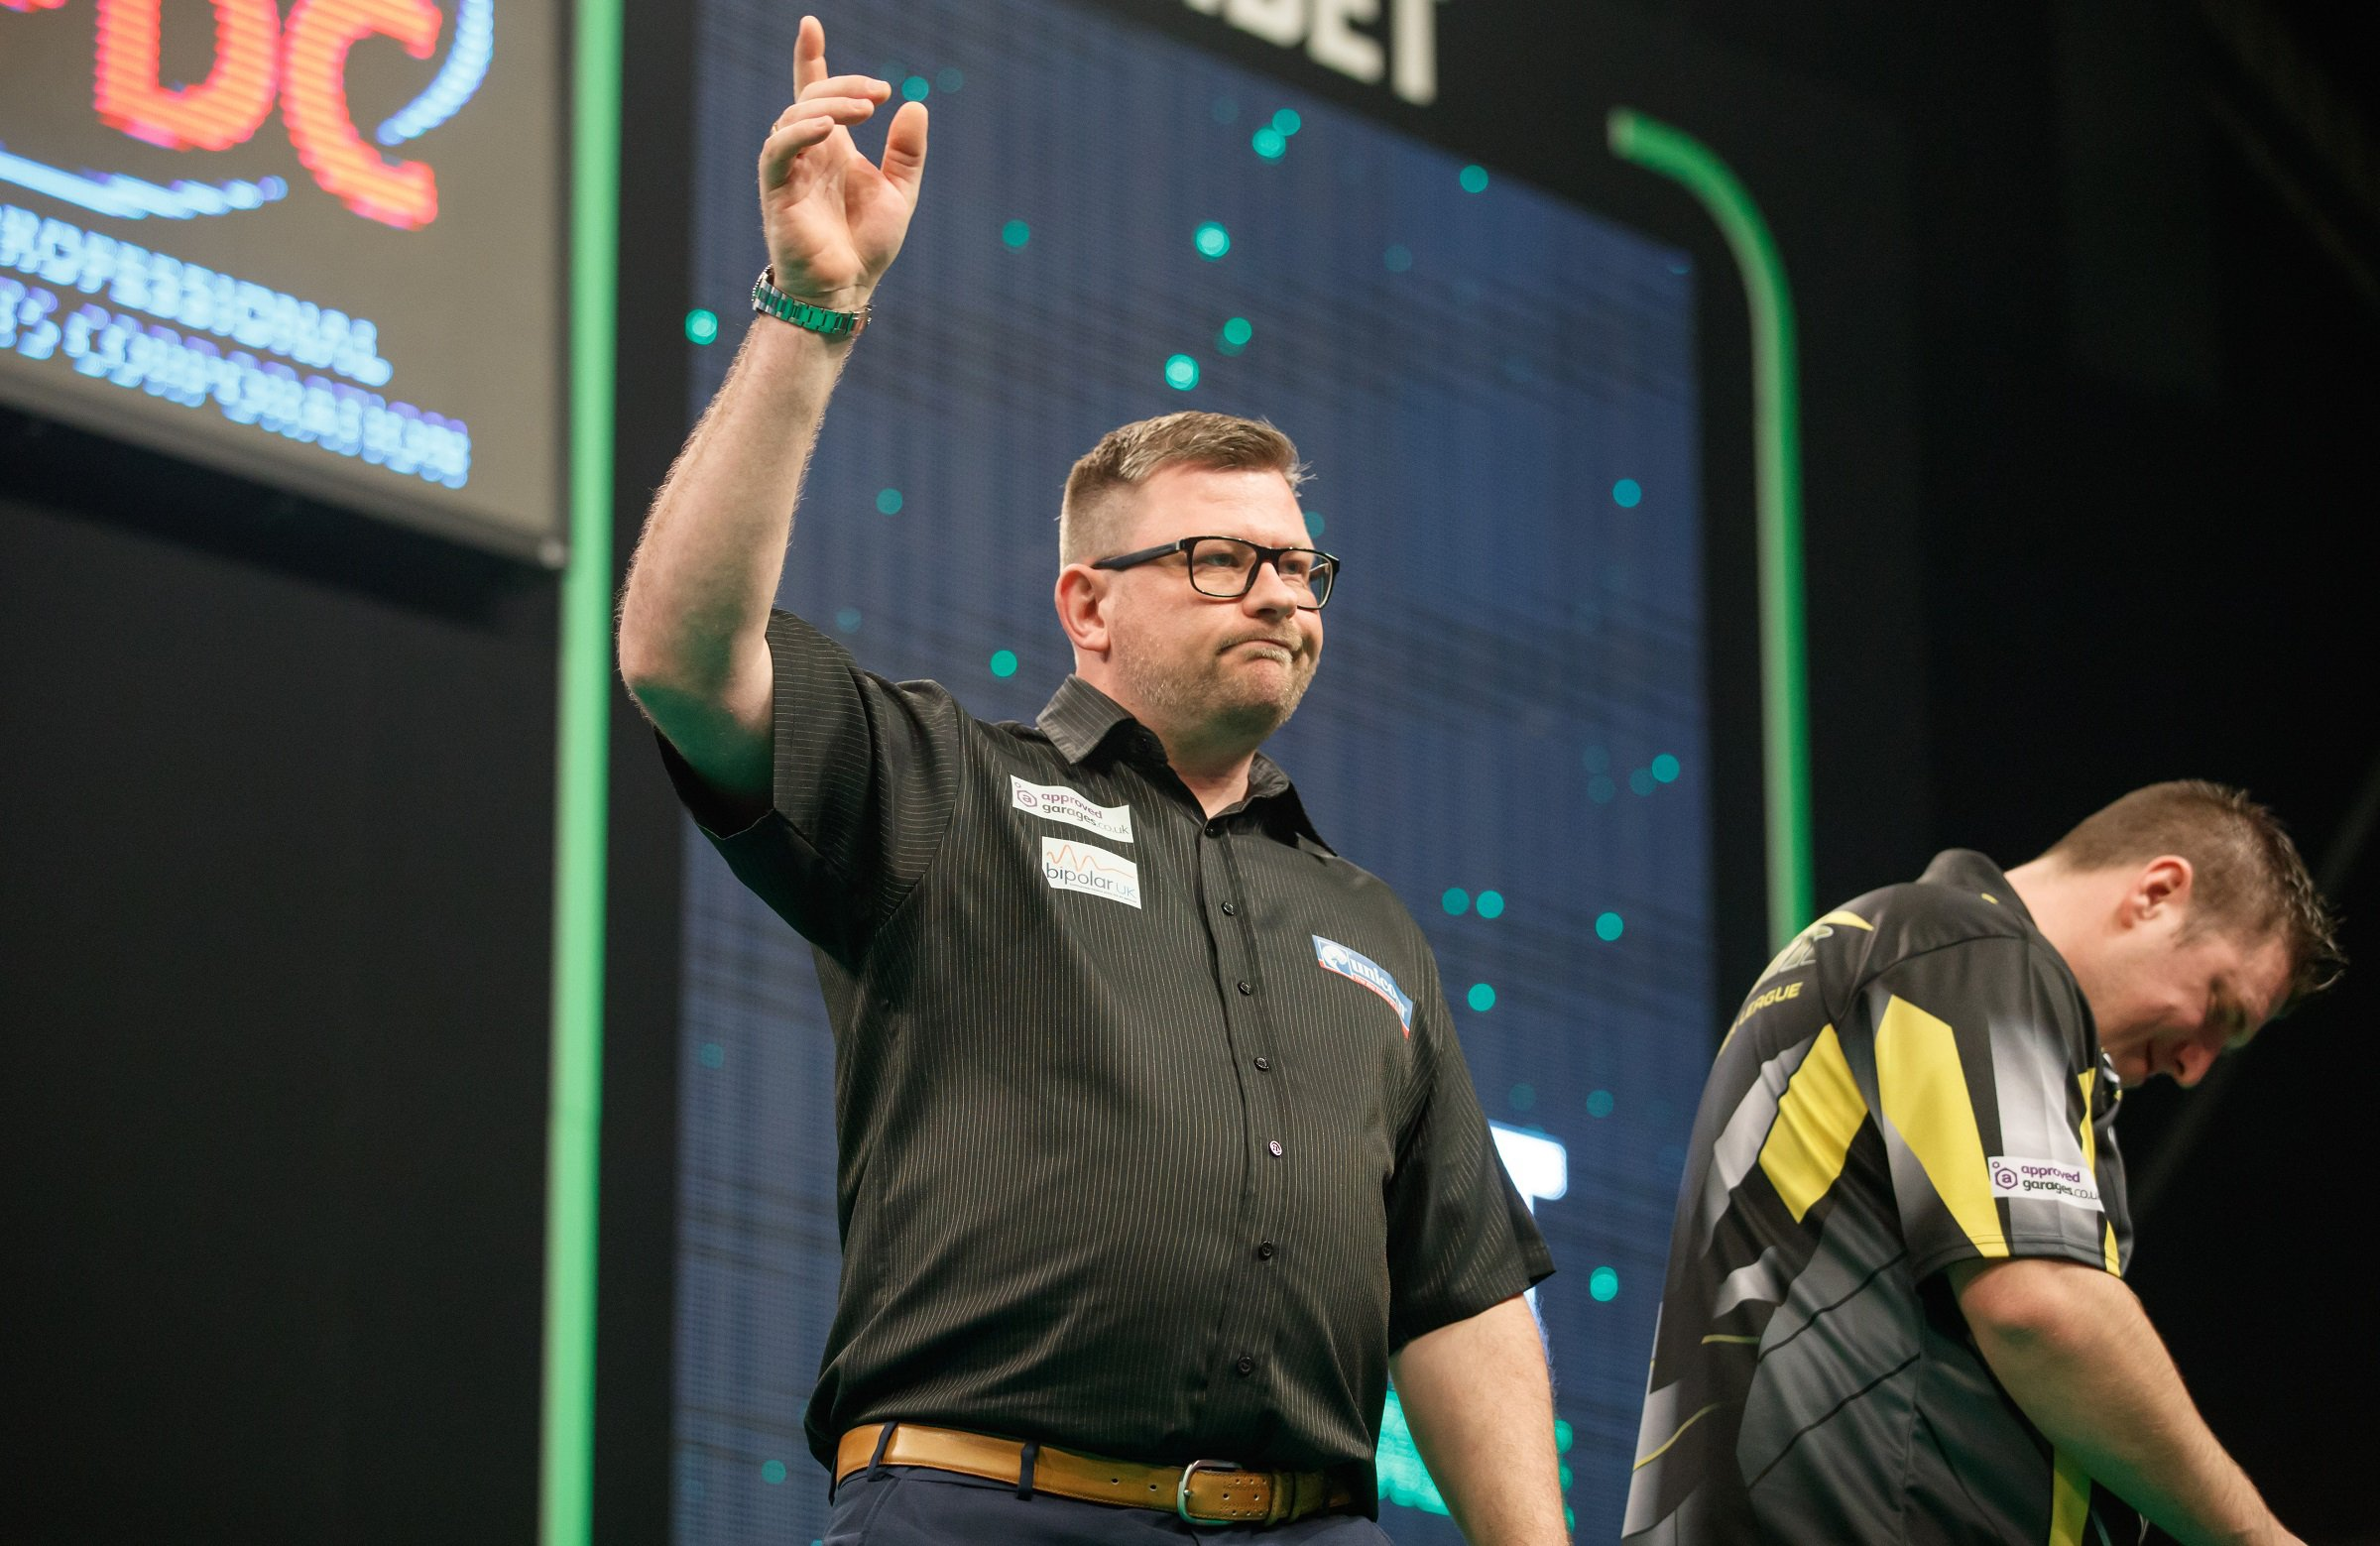 Premier League Darts leader James Wade: 'I'm the best in the world at chosen times'